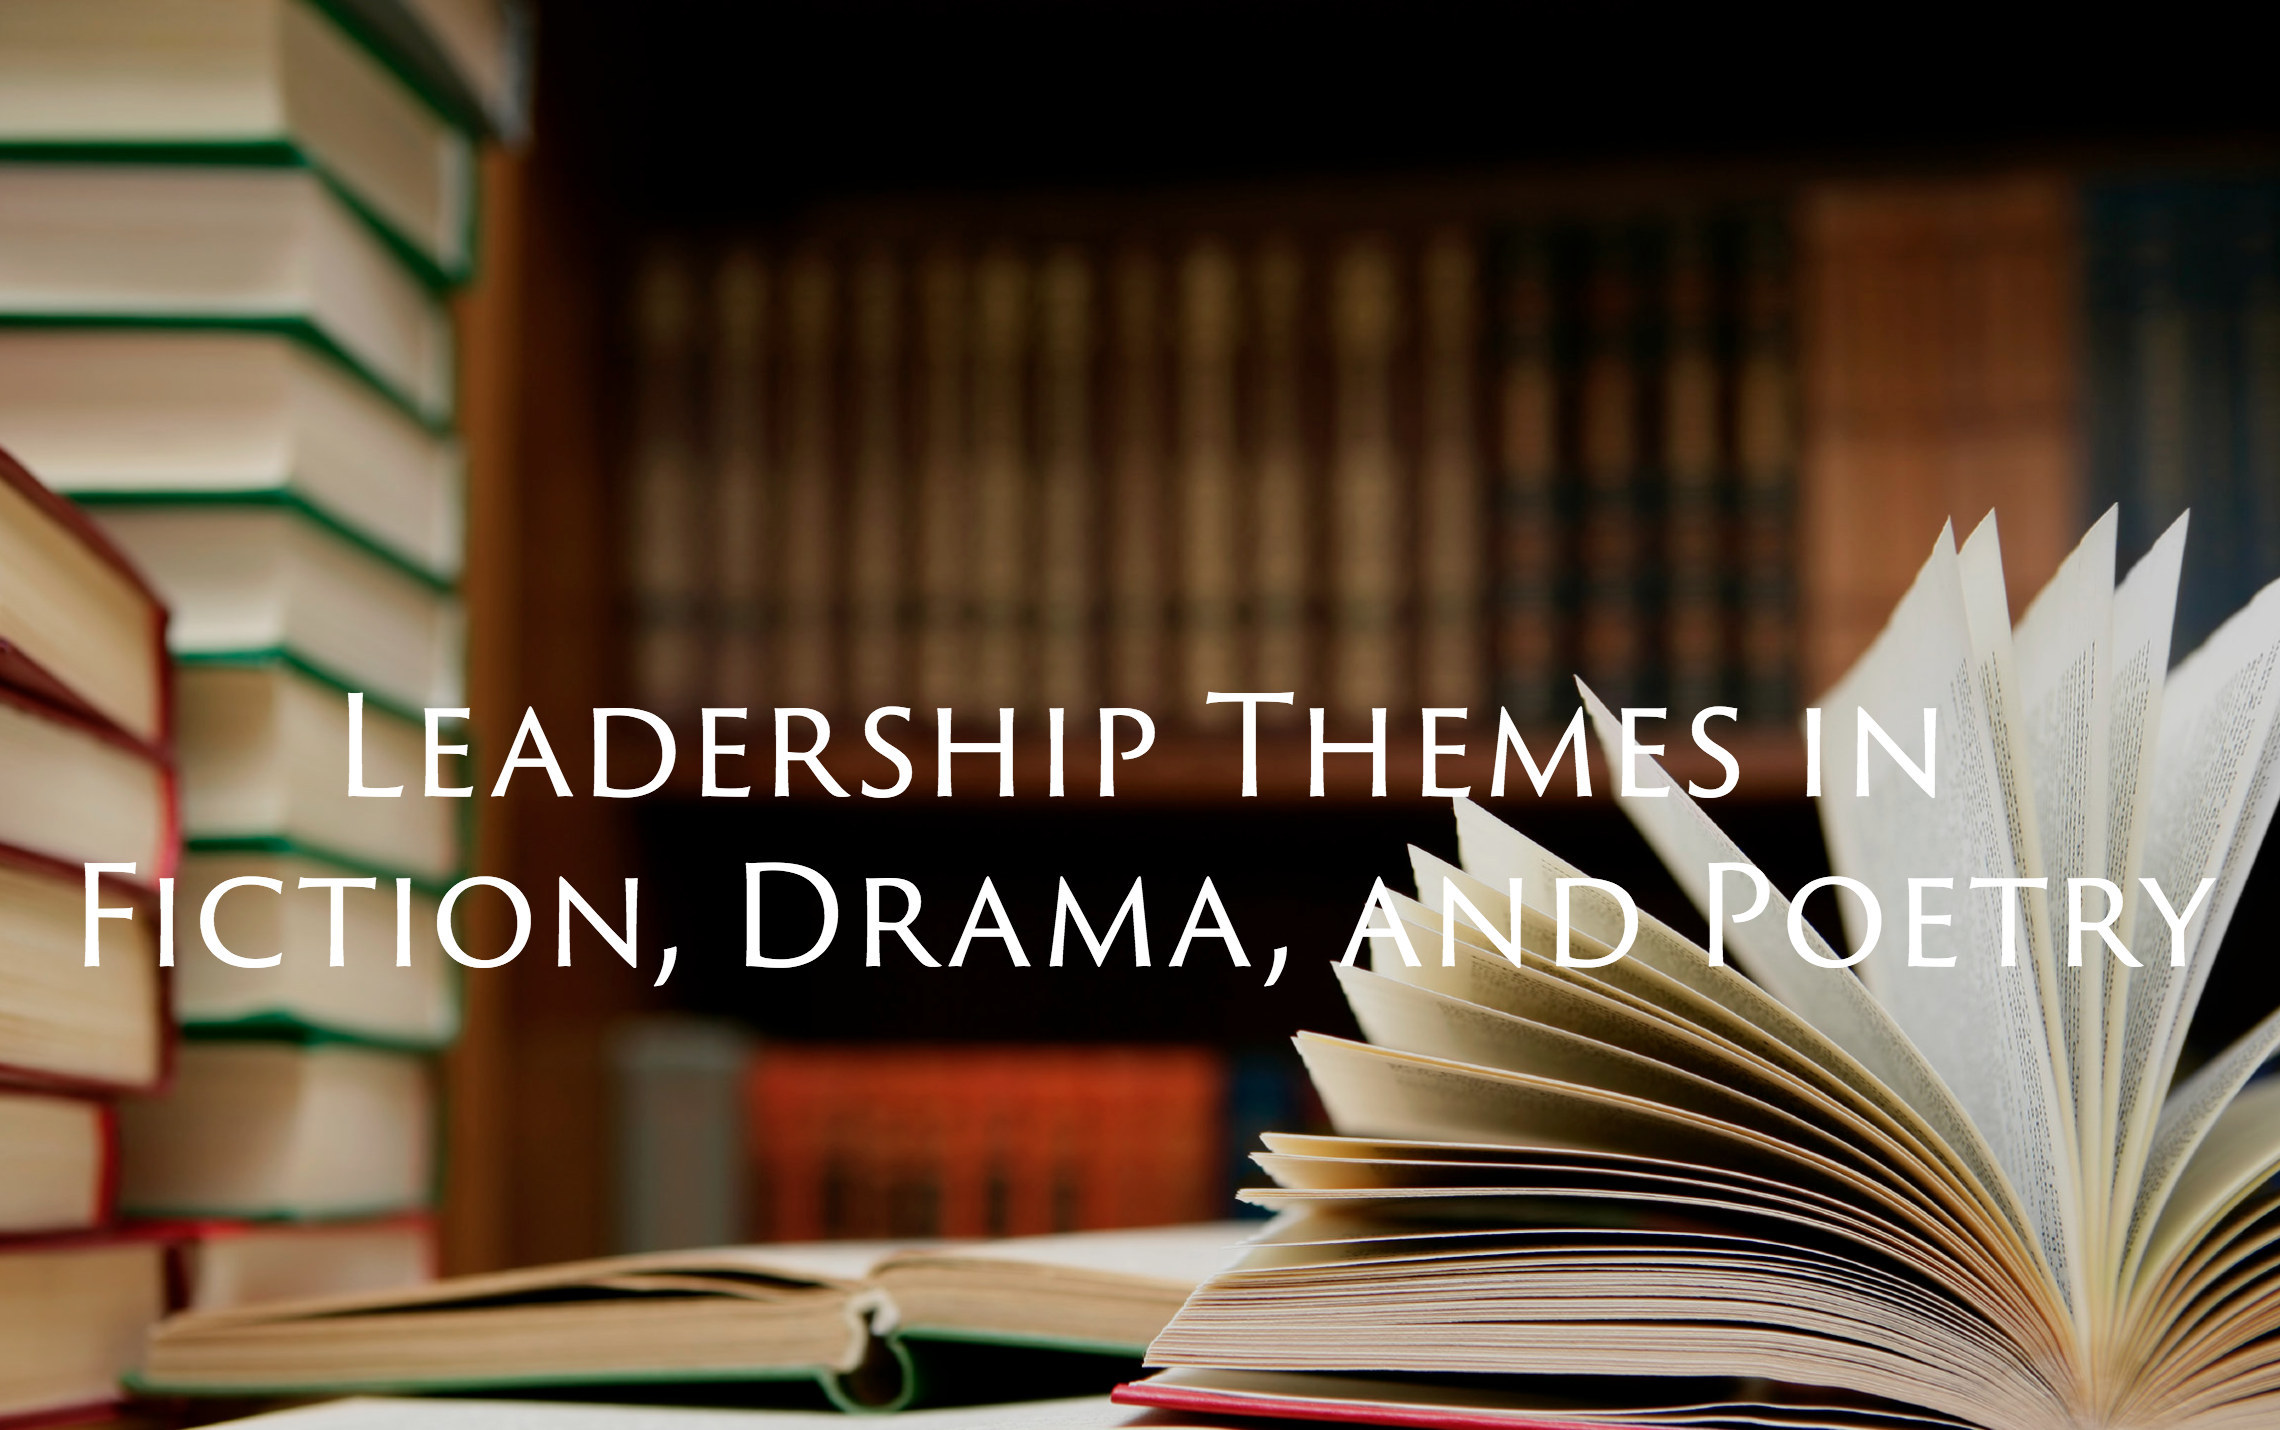 Leadership Themes in Fiction, Drama, and Poetry